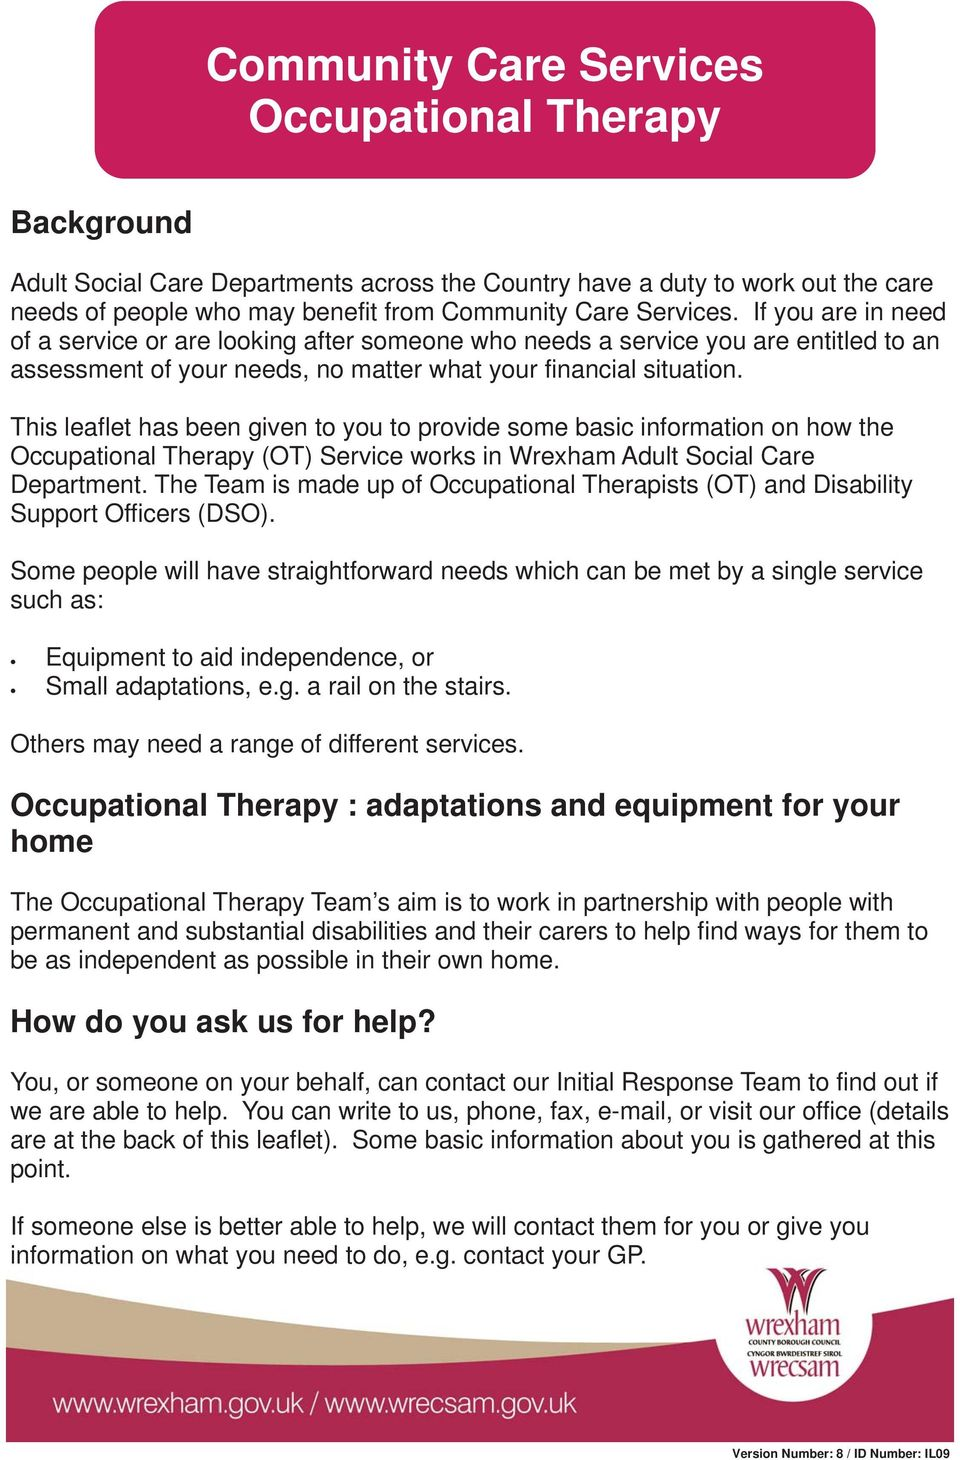 This leaflet has been given to you to provide some basic information on how the Occupational Therapy (OT) Service works in Wrexham Adult Social Care Department.